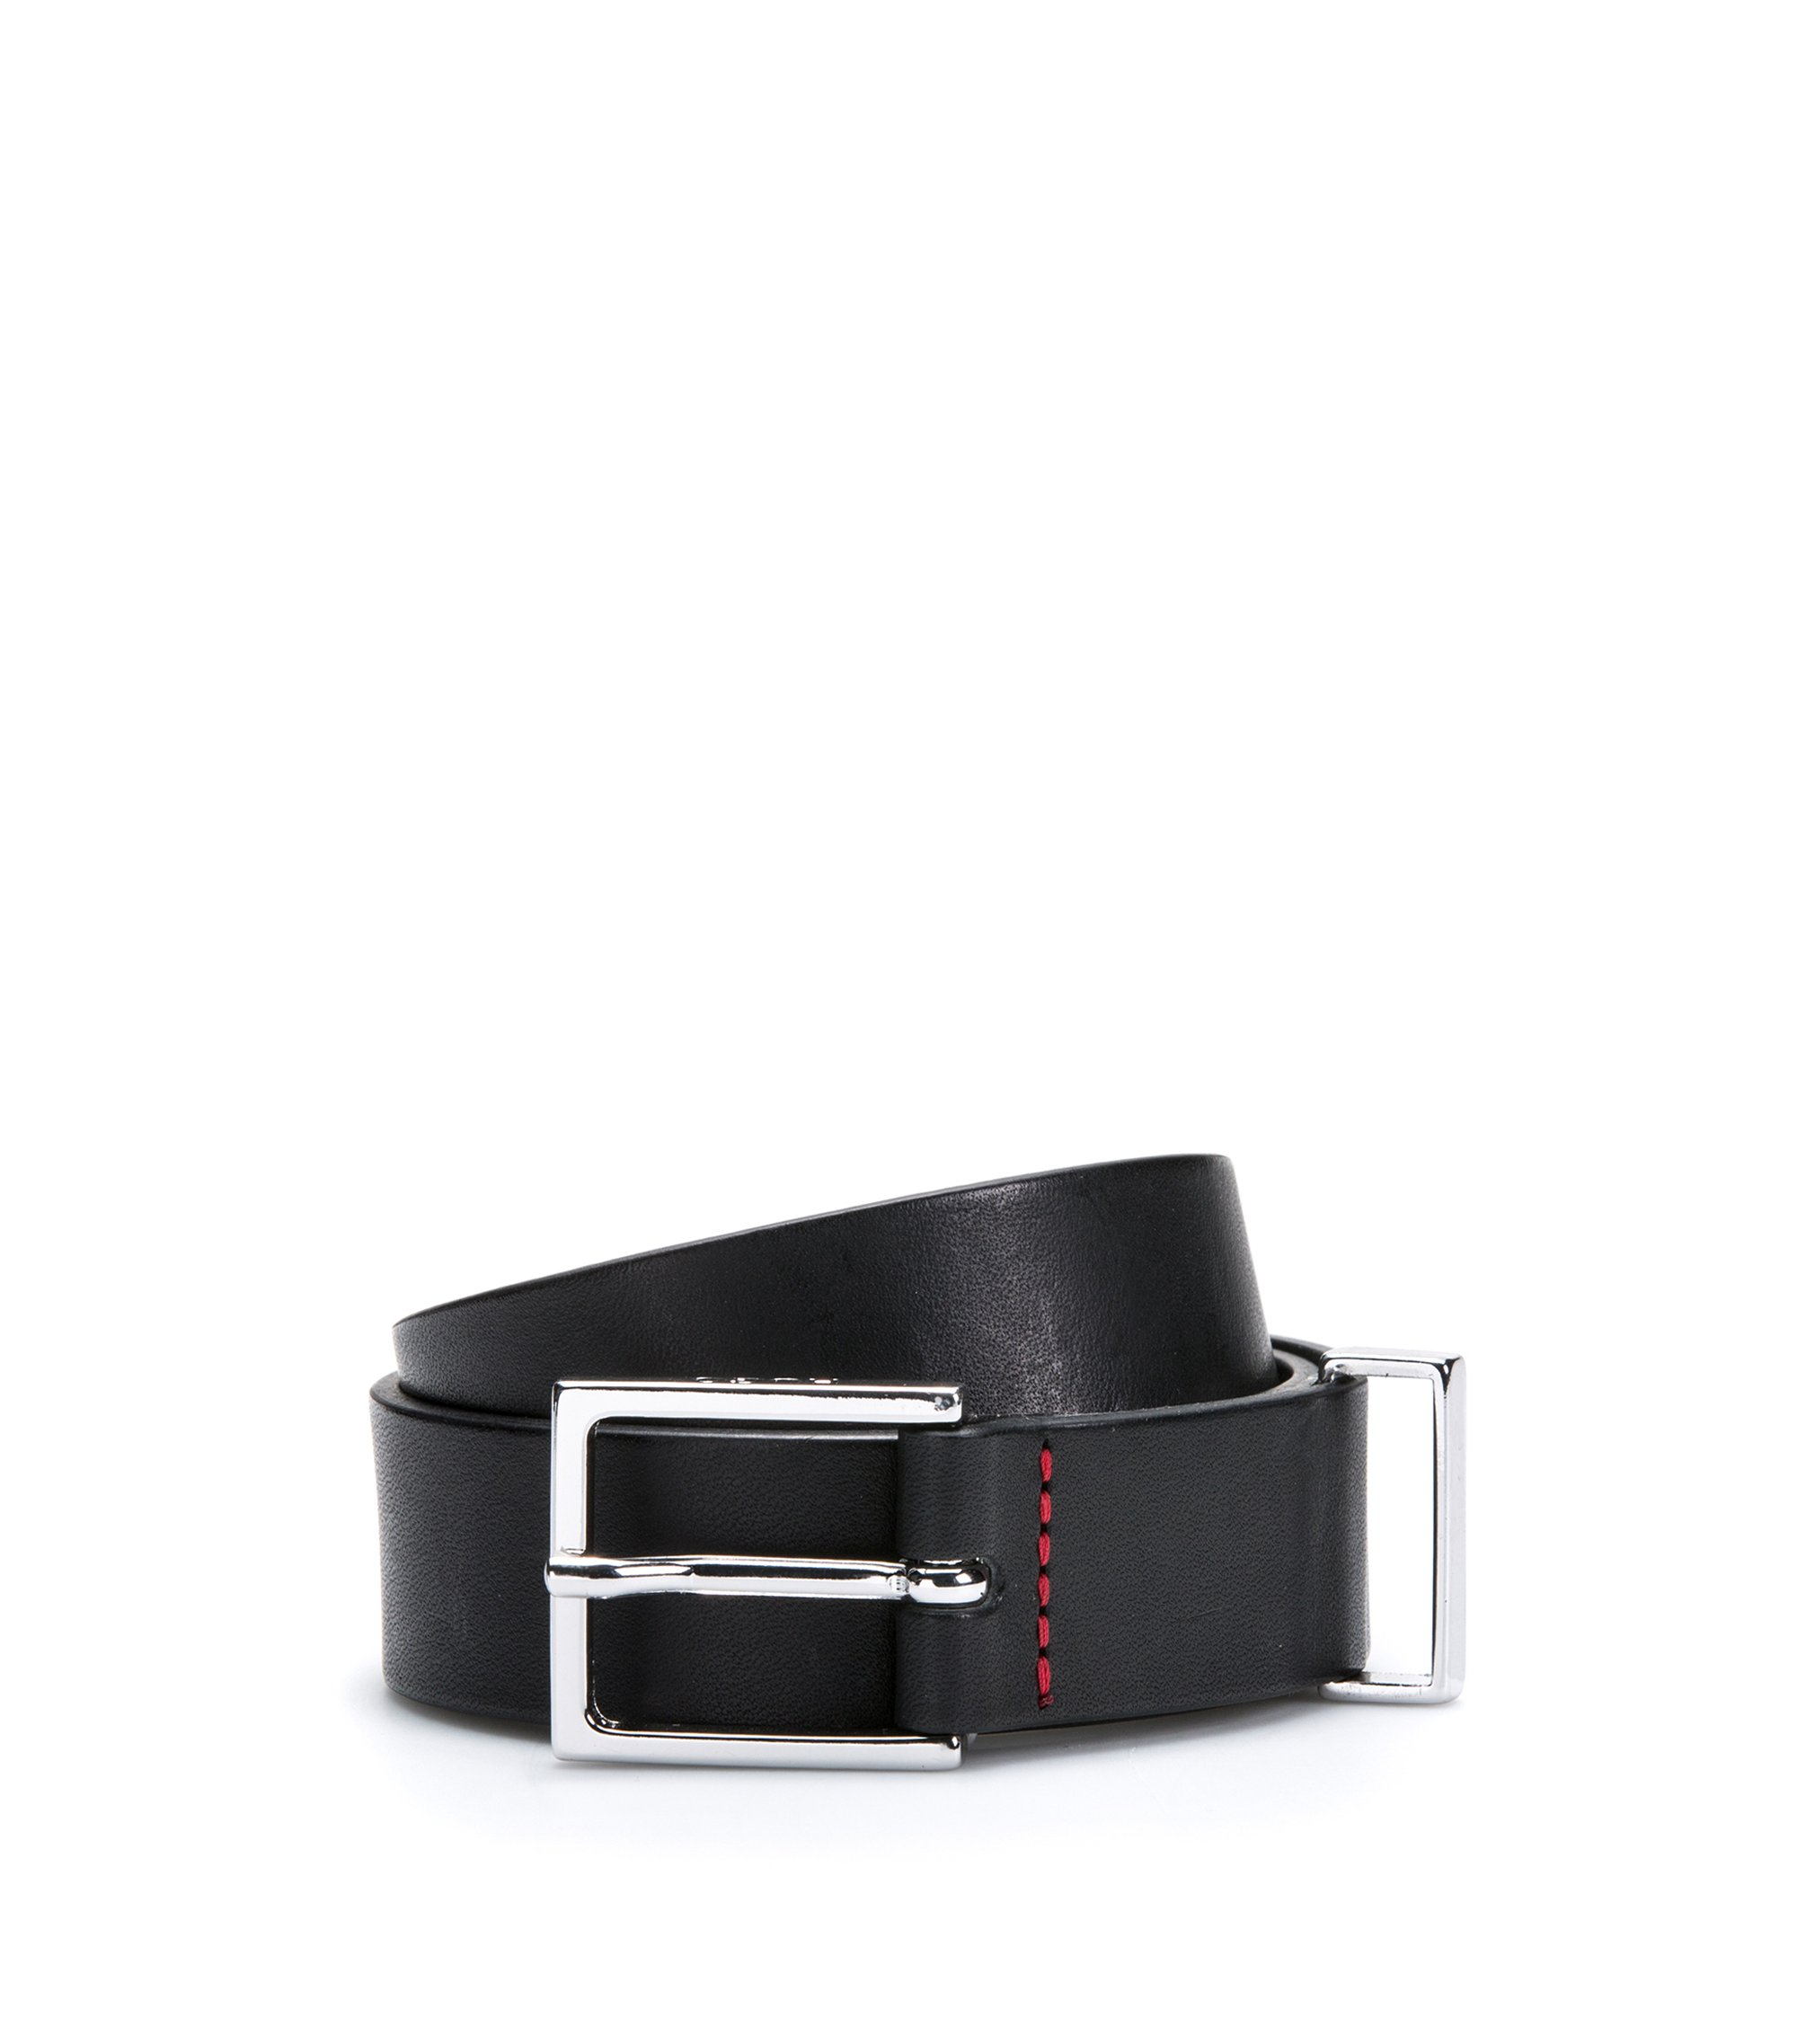 Smooth-leather belt with polished metal hardware, Black